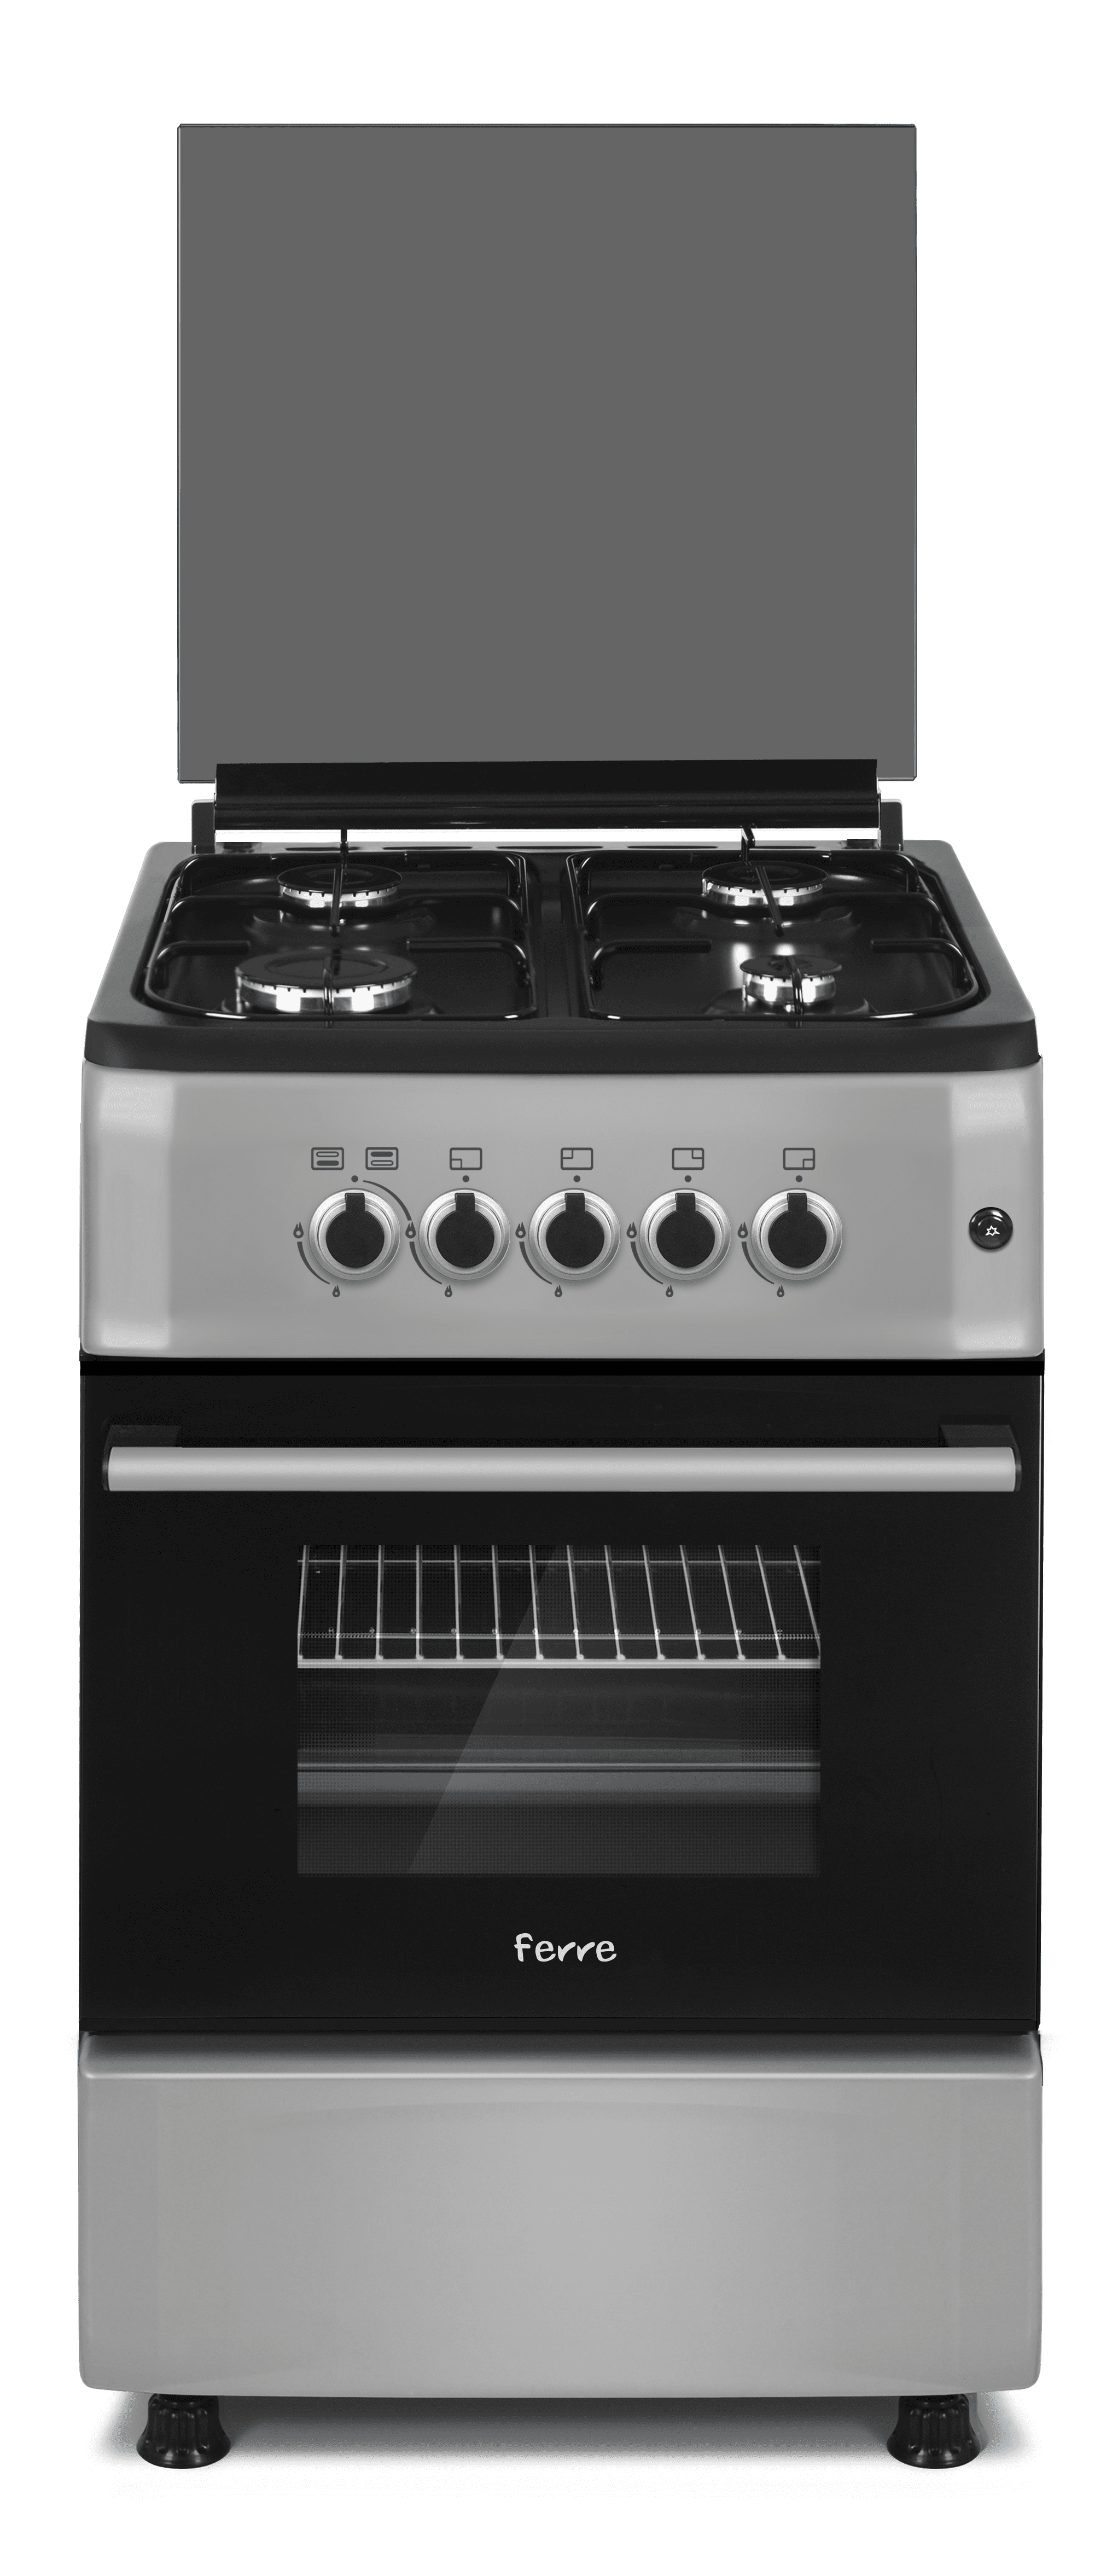 -ferre-free-standing-cooker-stove-50&times60-f5s40g2fdis